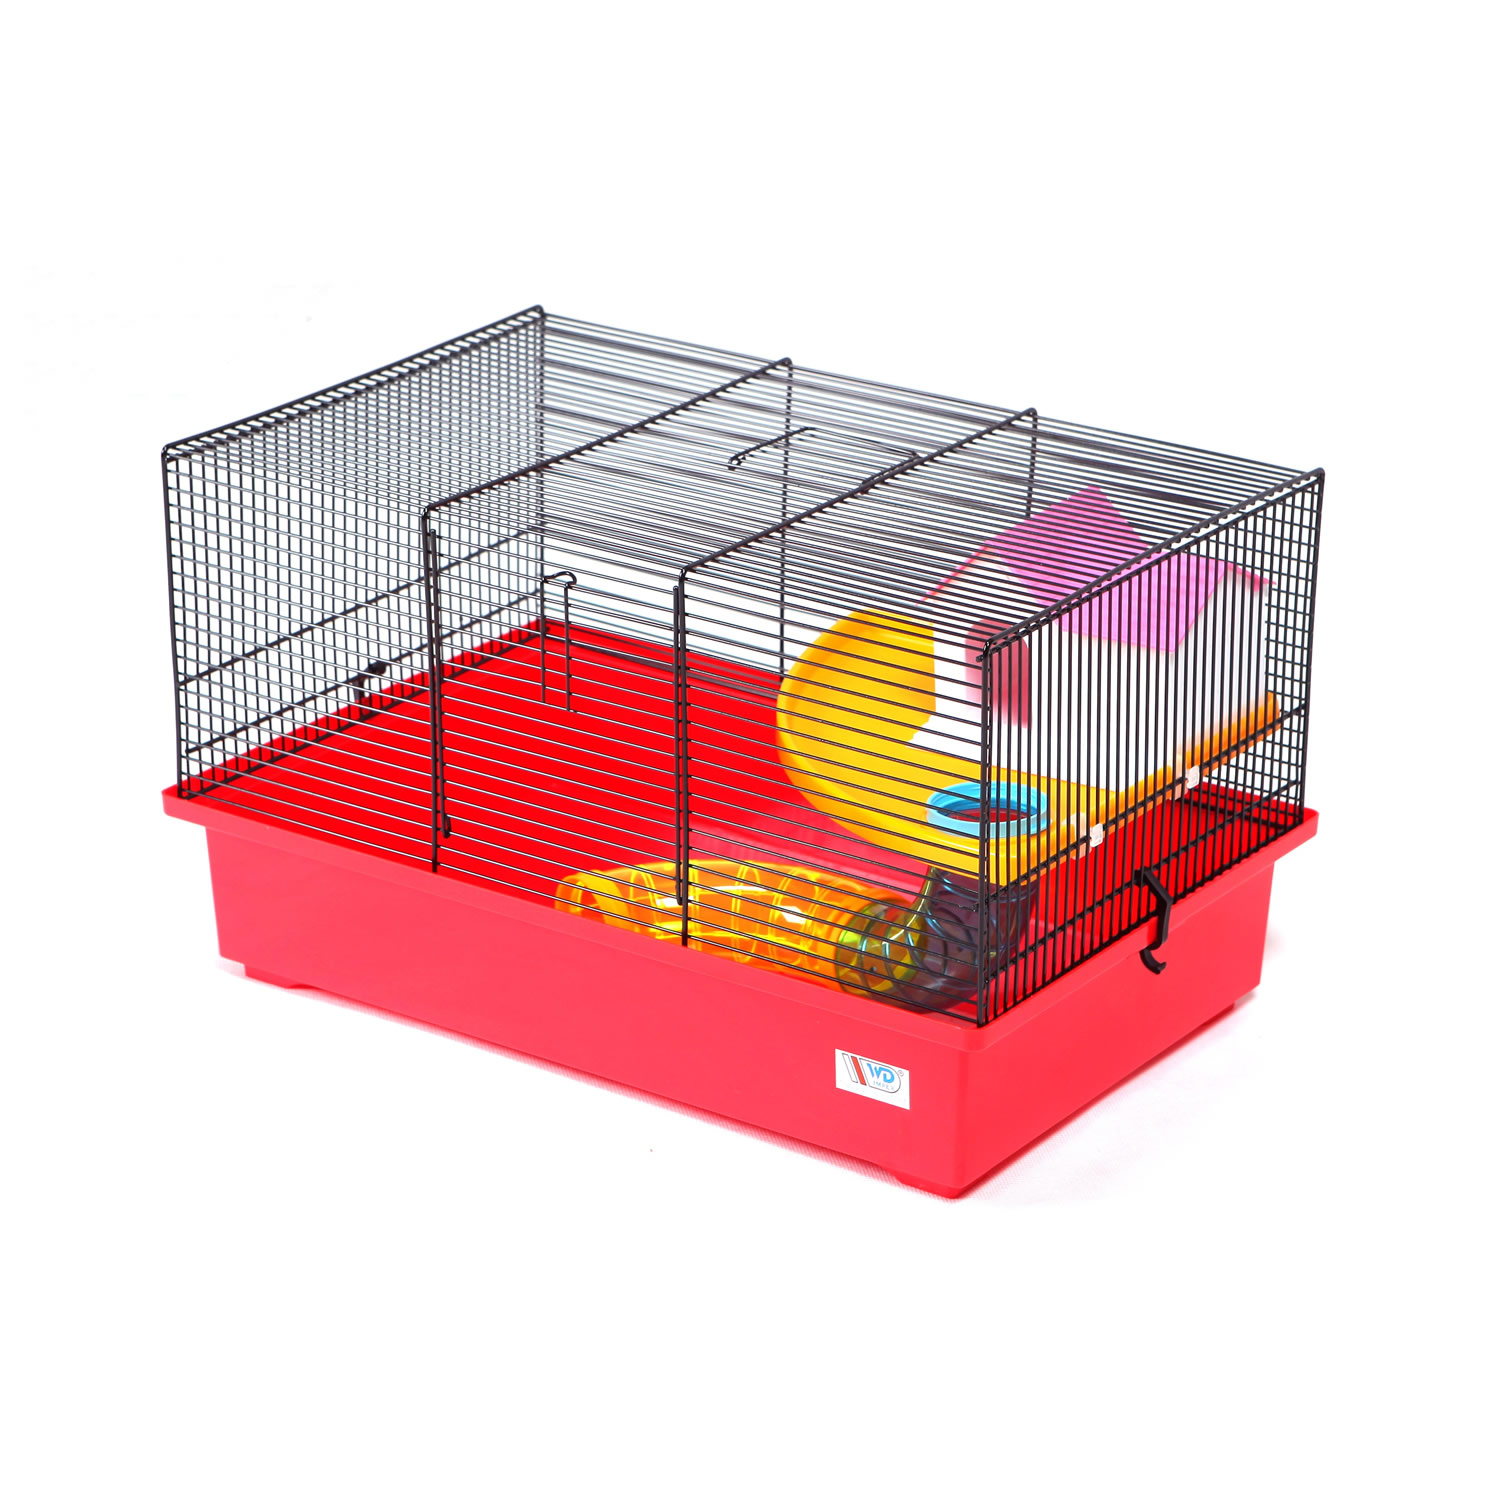 Free Hamster Cage Cliparts, Download Free Clip Art, Free.